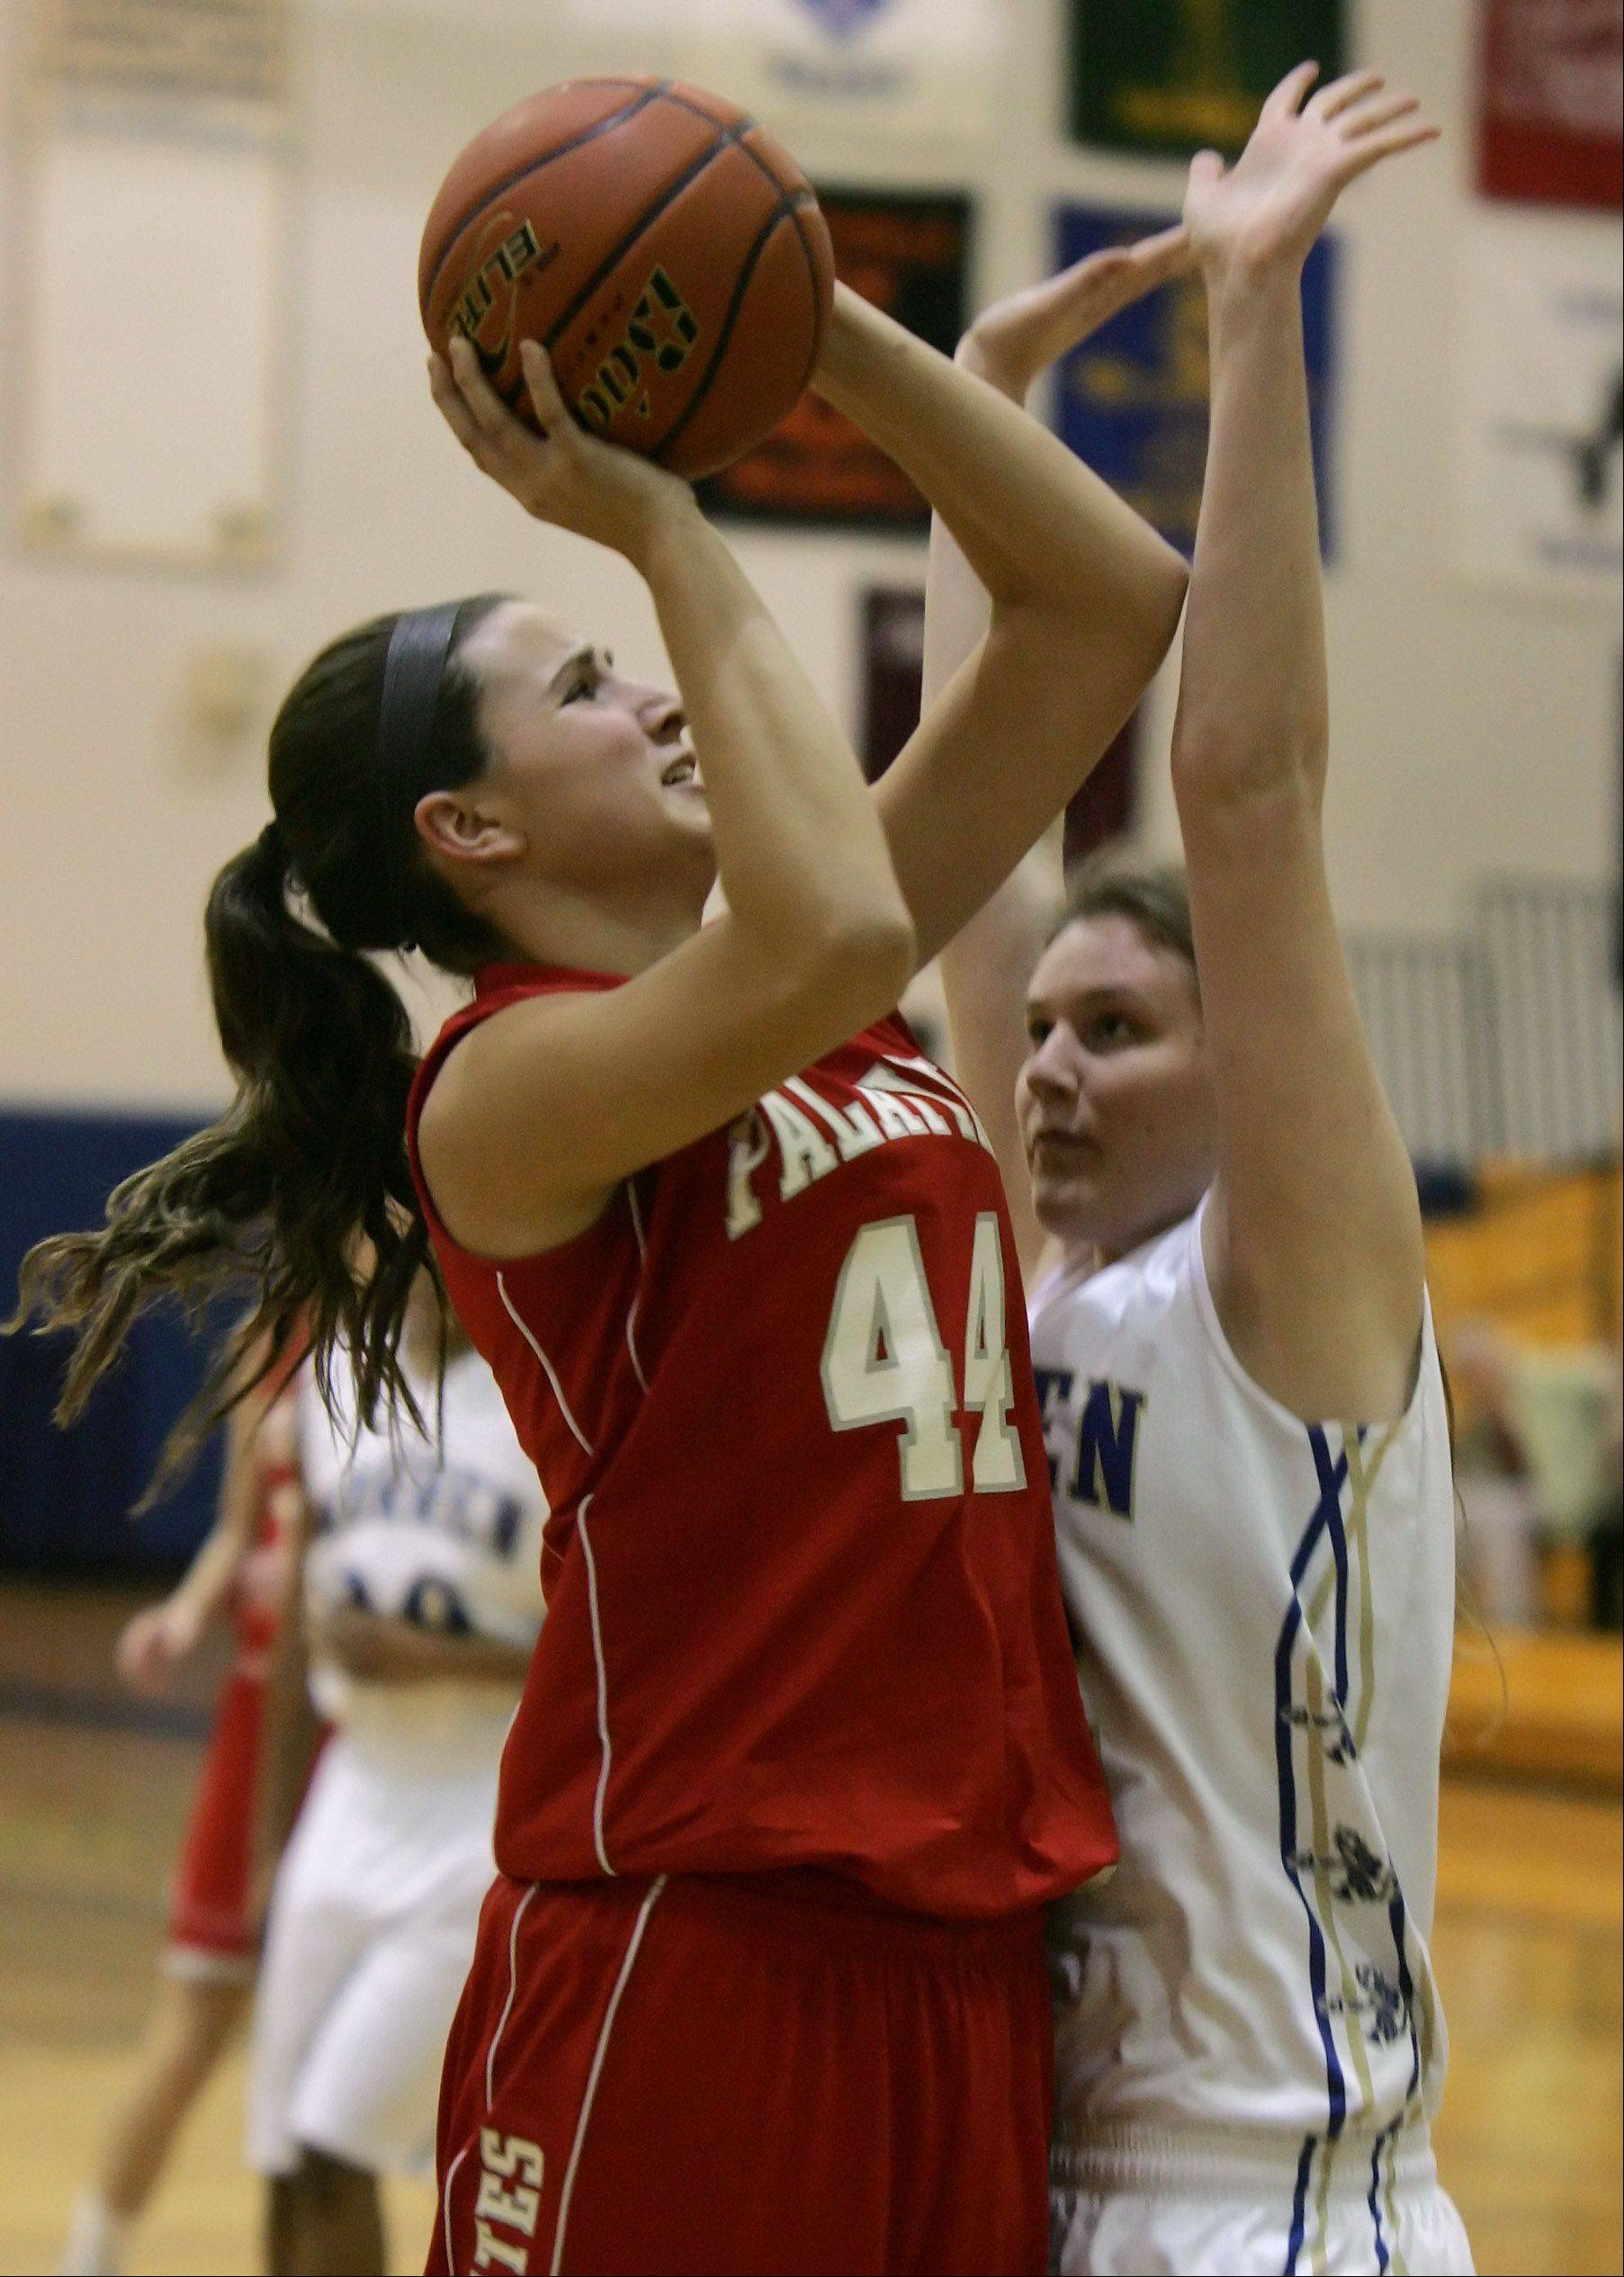 Palatine center Monica Masini shoots over Warren center Kristin Jacobs during the Palatine at Warren girls high school basketball game in the Blue Devil Classic Thursday at Warren High School in Gurnee.